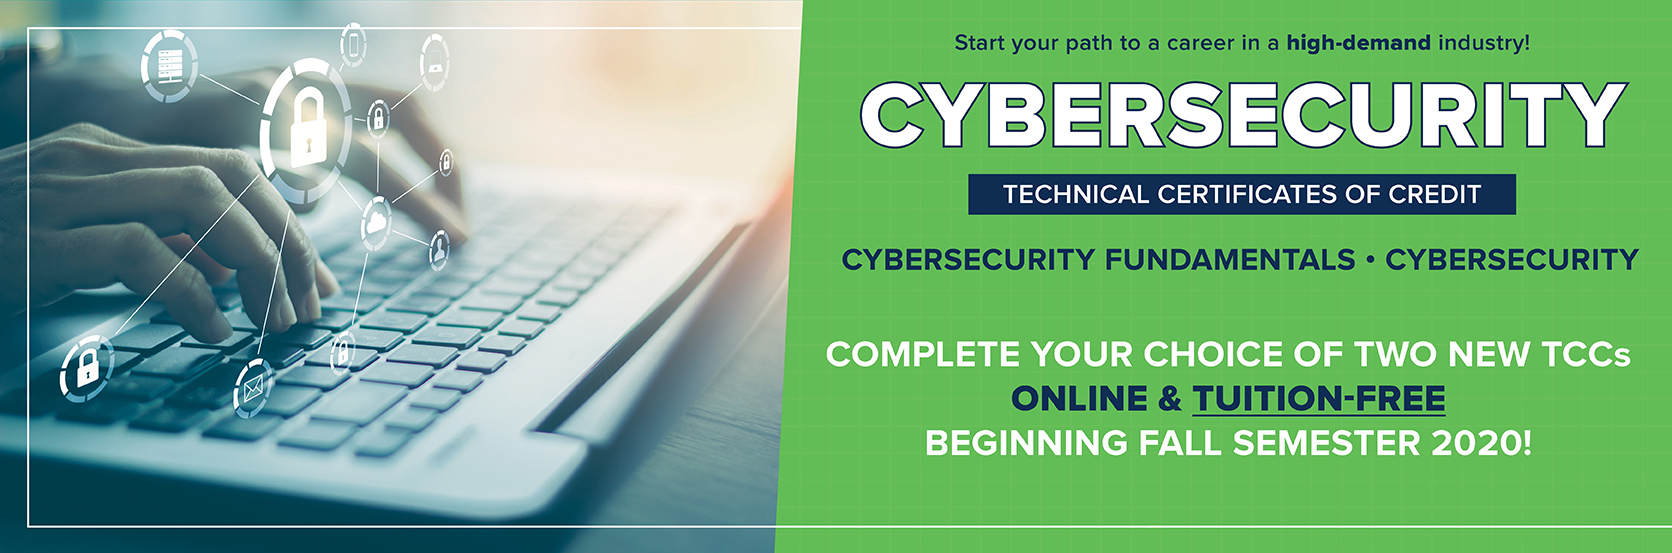 New Cybersecurity Fundamentals TCC and Cybersecurity TCC offered on-campus and online beginning Fall 2020. Programs offered tuition-free, through the HOPE CAREER GRANT, for students who qualify.